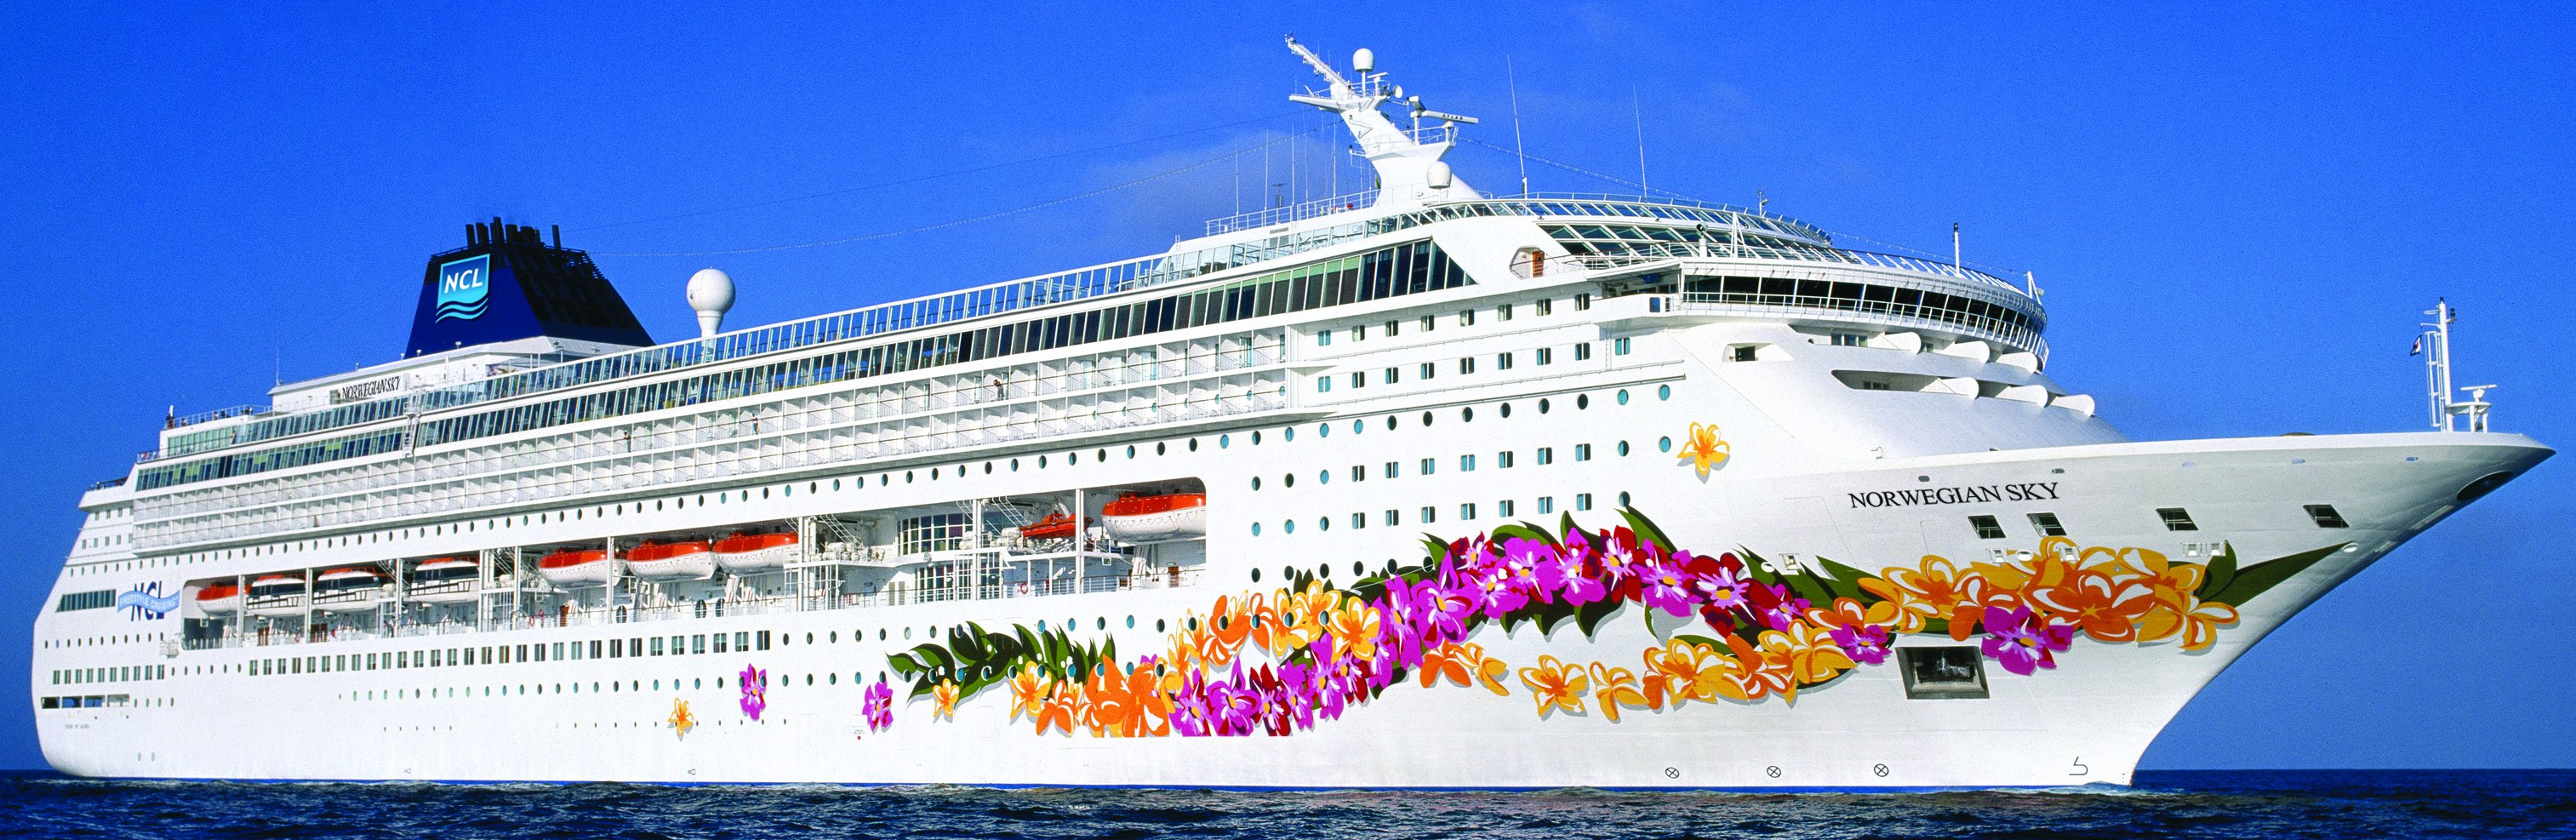 Caribbean & Cuba Cruise from Miami on Norwegian Sky